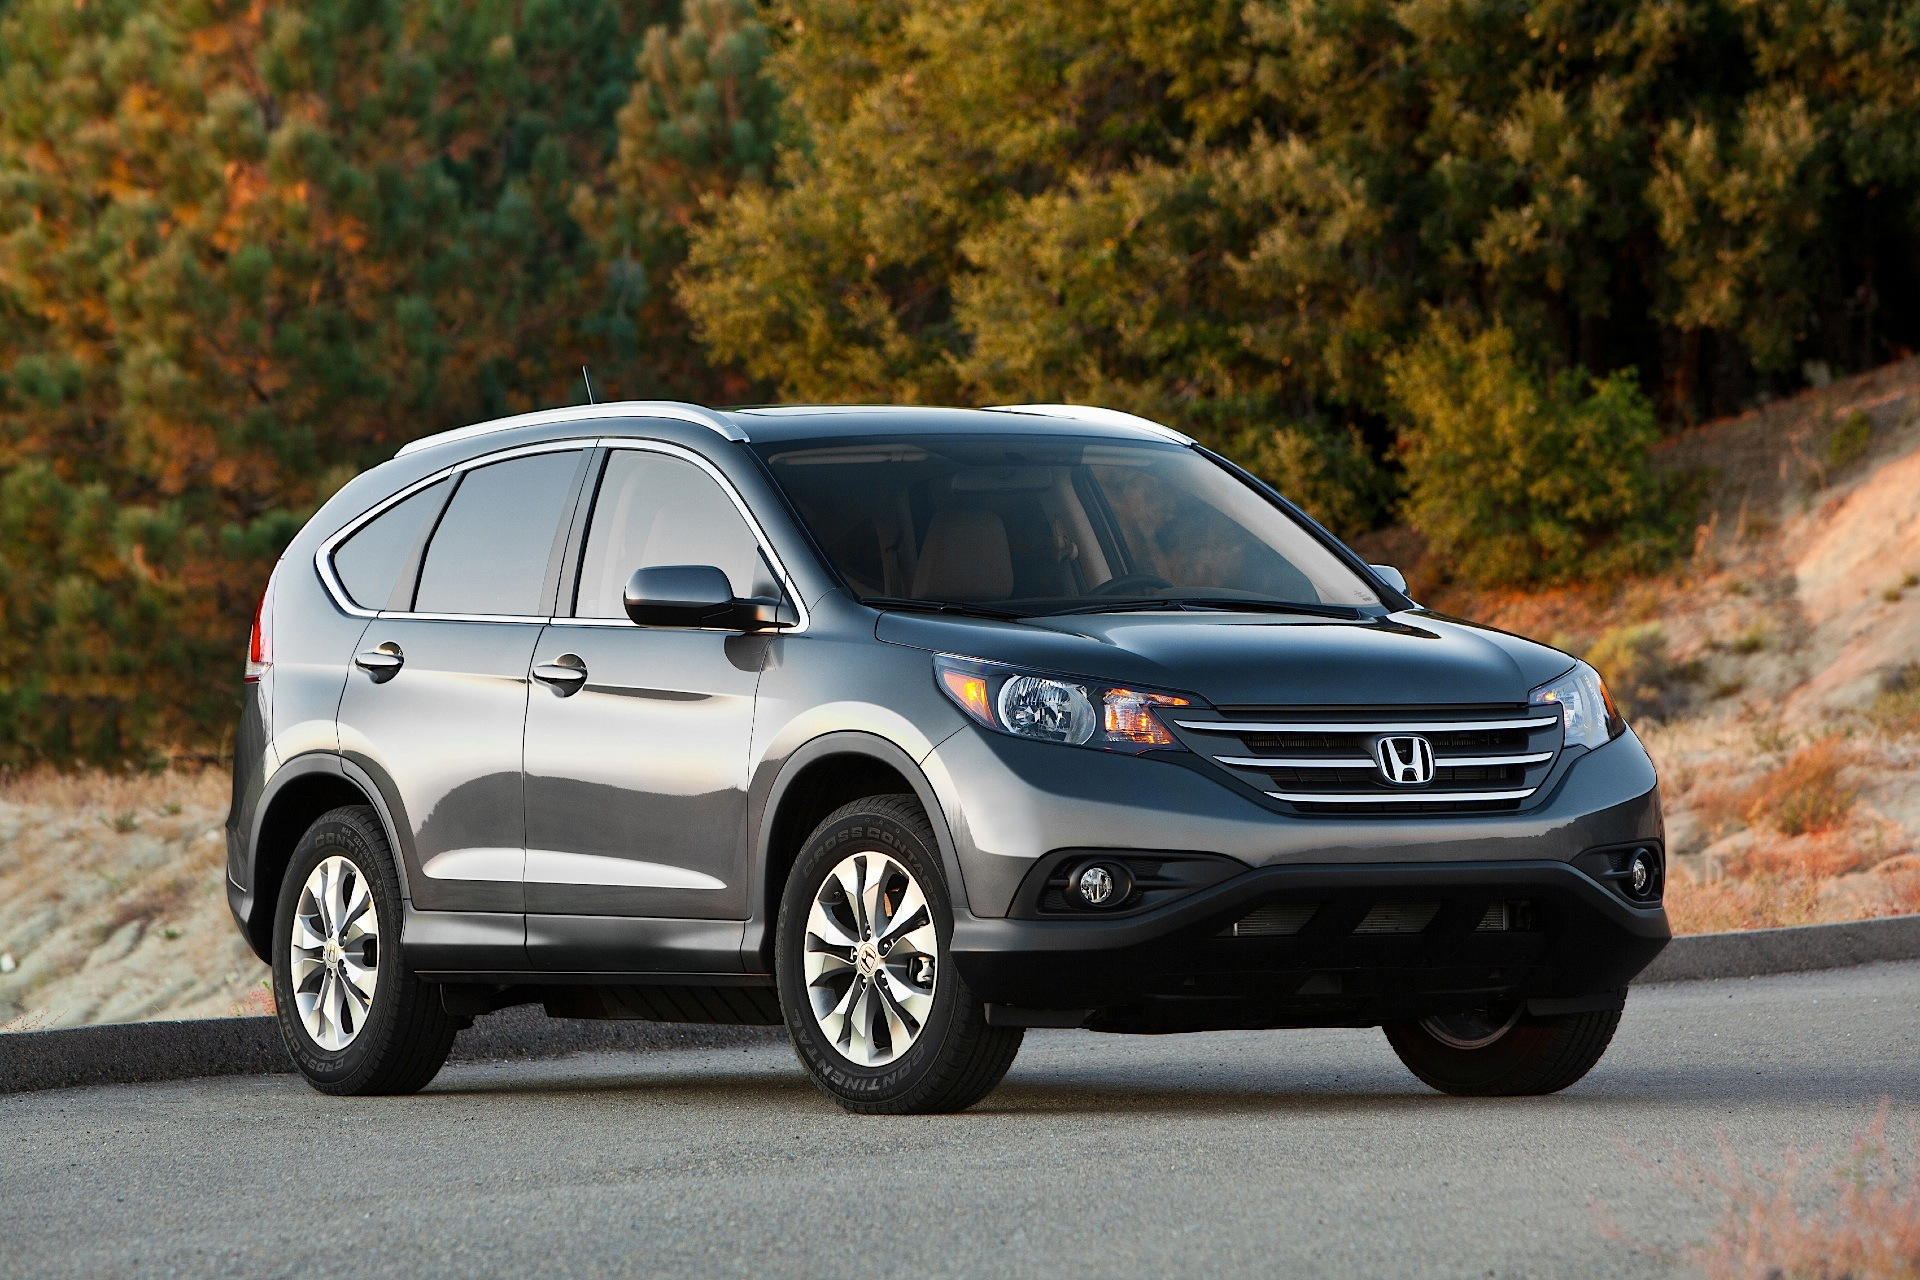 HONDA HONDA CR-V specs & photos - 2011, 2012, 2013, 2014 ...